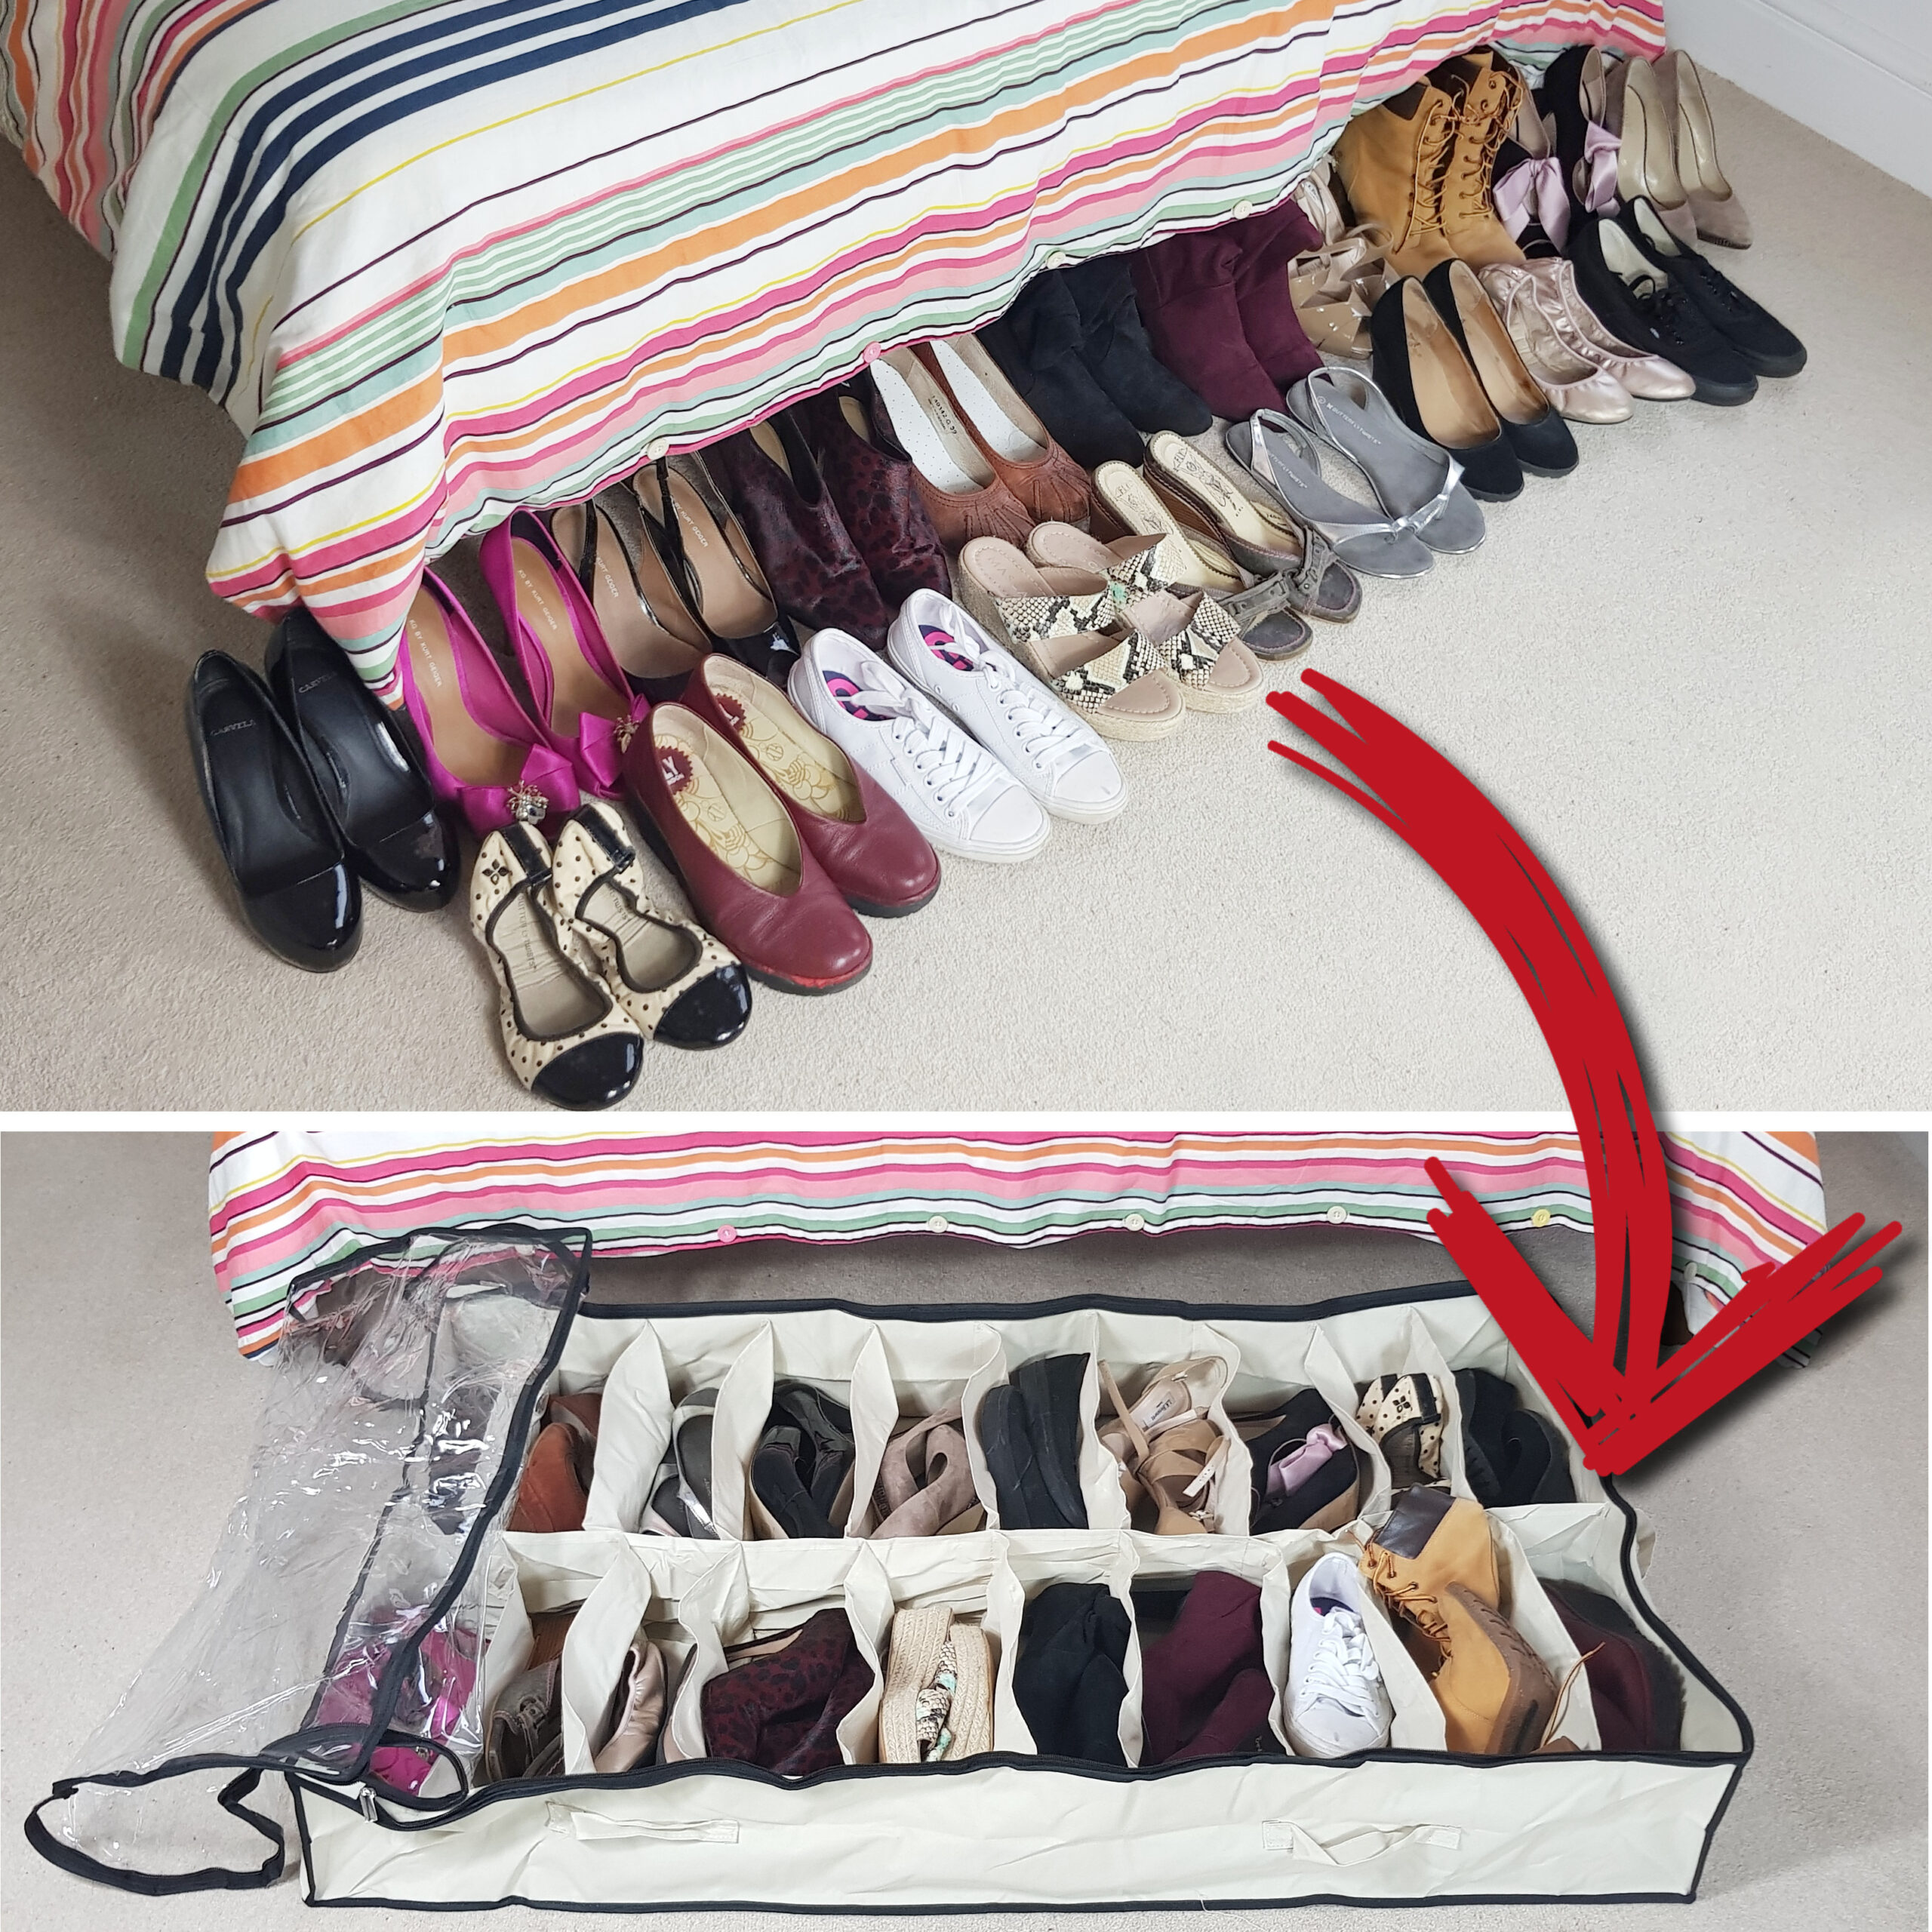 Extra Large Underbed Shoe Organiser With Clear Top, Heavy Duty, Up To 20 Pairs of Shoes, 120x72x18cm, Beige